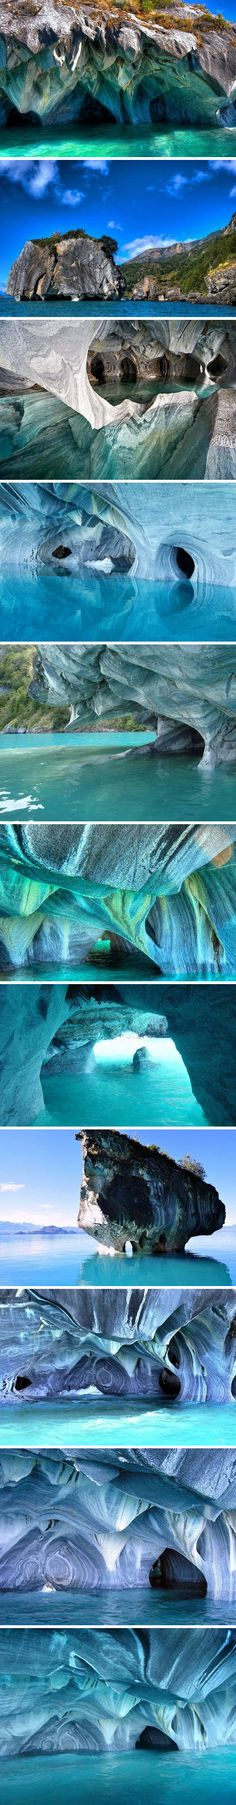 Marble Caves of Patagonia in Chile –     Lake Carrera. The lake is on the border of Argentina and Chile, and the caves are located on the side of Chile.